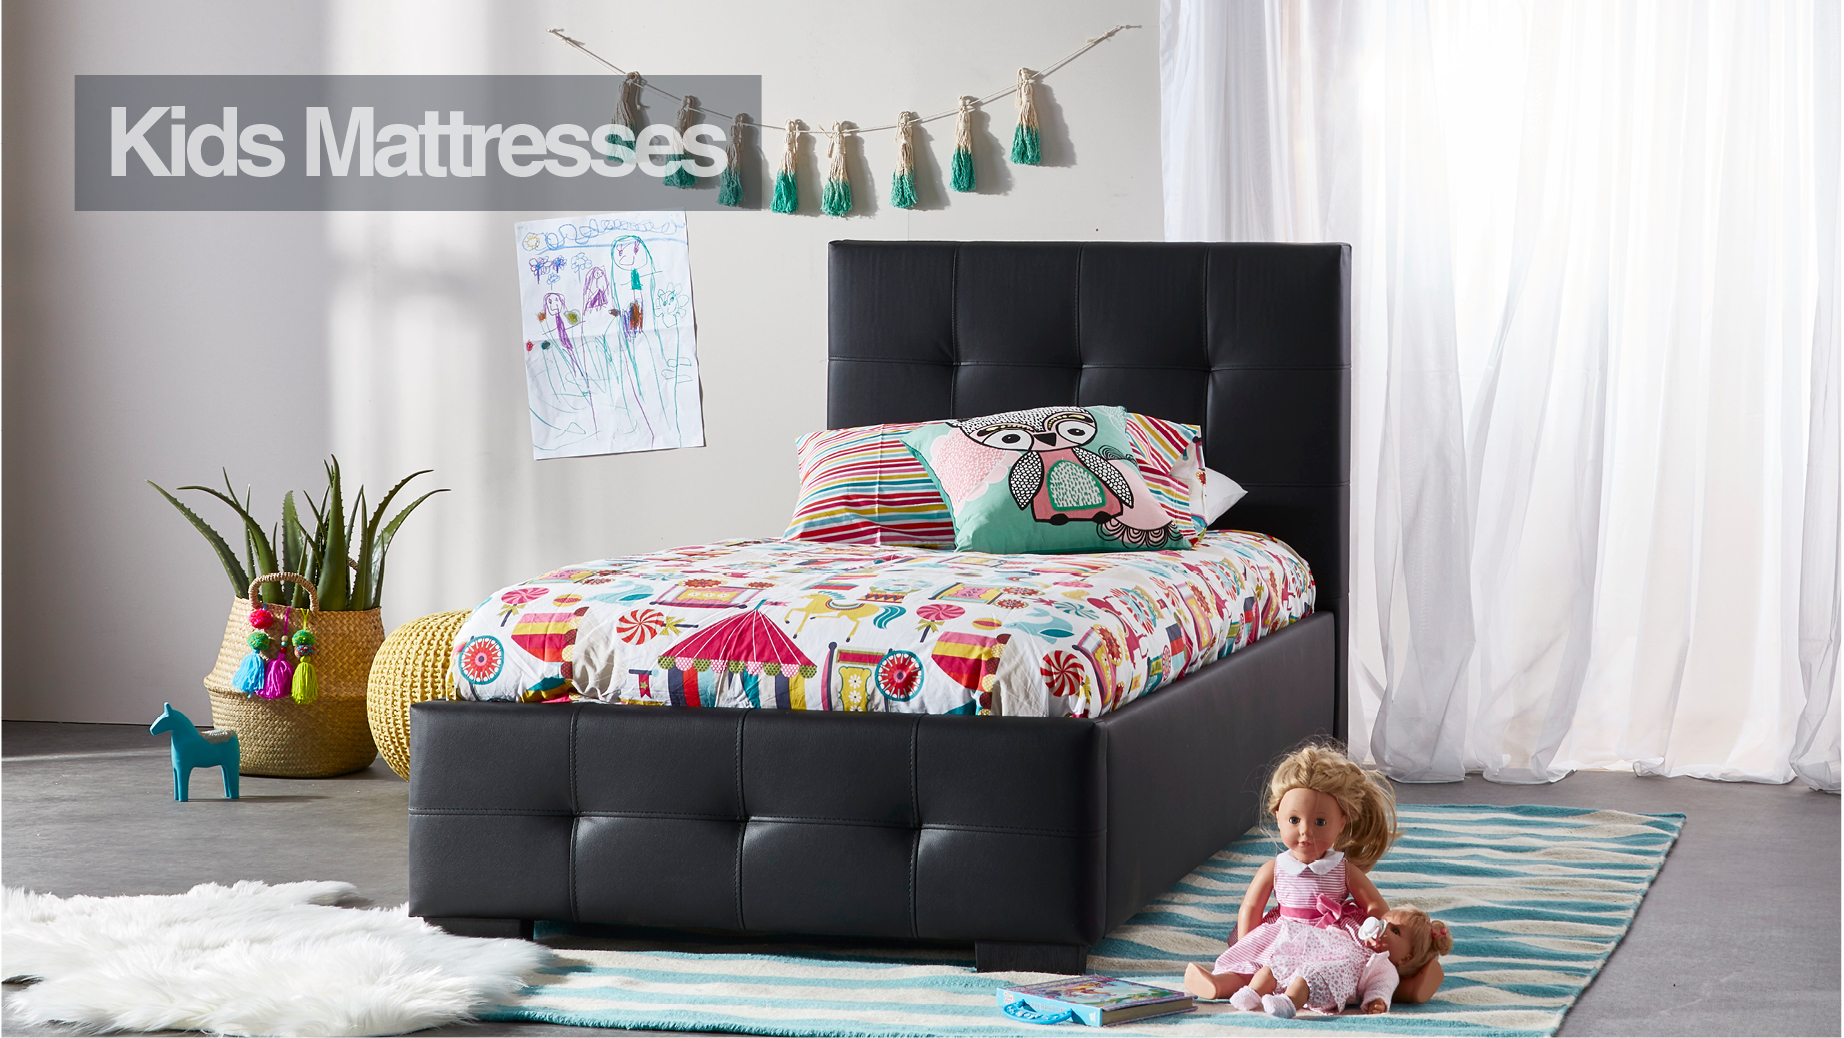 variety bedroom furniture designs. Beds Online Has A Wide Variety Of For Growing Kids And We\u0027re Proud To Present Our Gallery You In Great Options. Bedroom Furniture Designs N